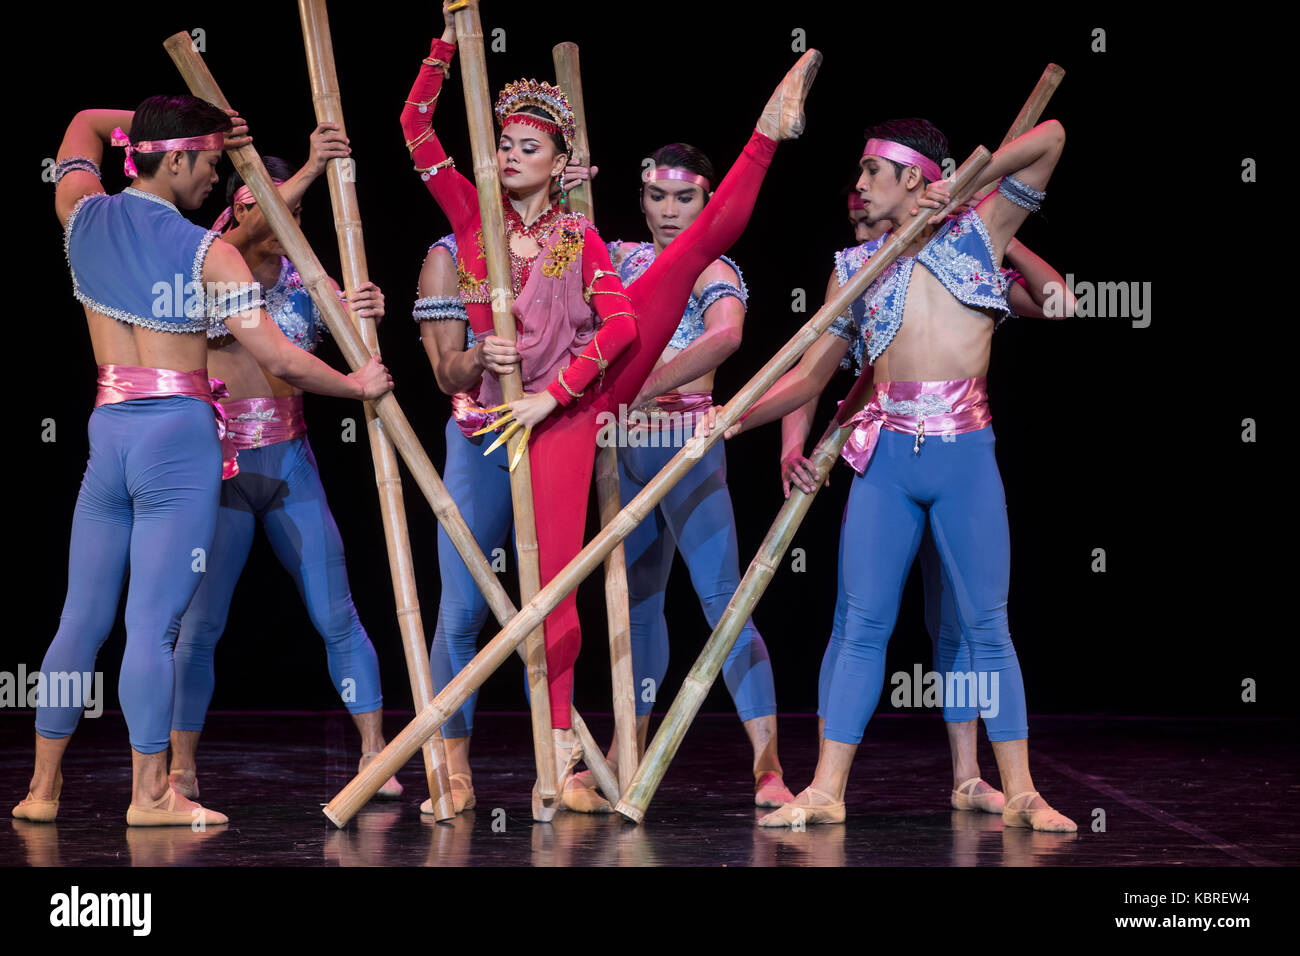 Performance of the dance group of the Philippines 'Ballet Manila' - Stock Image